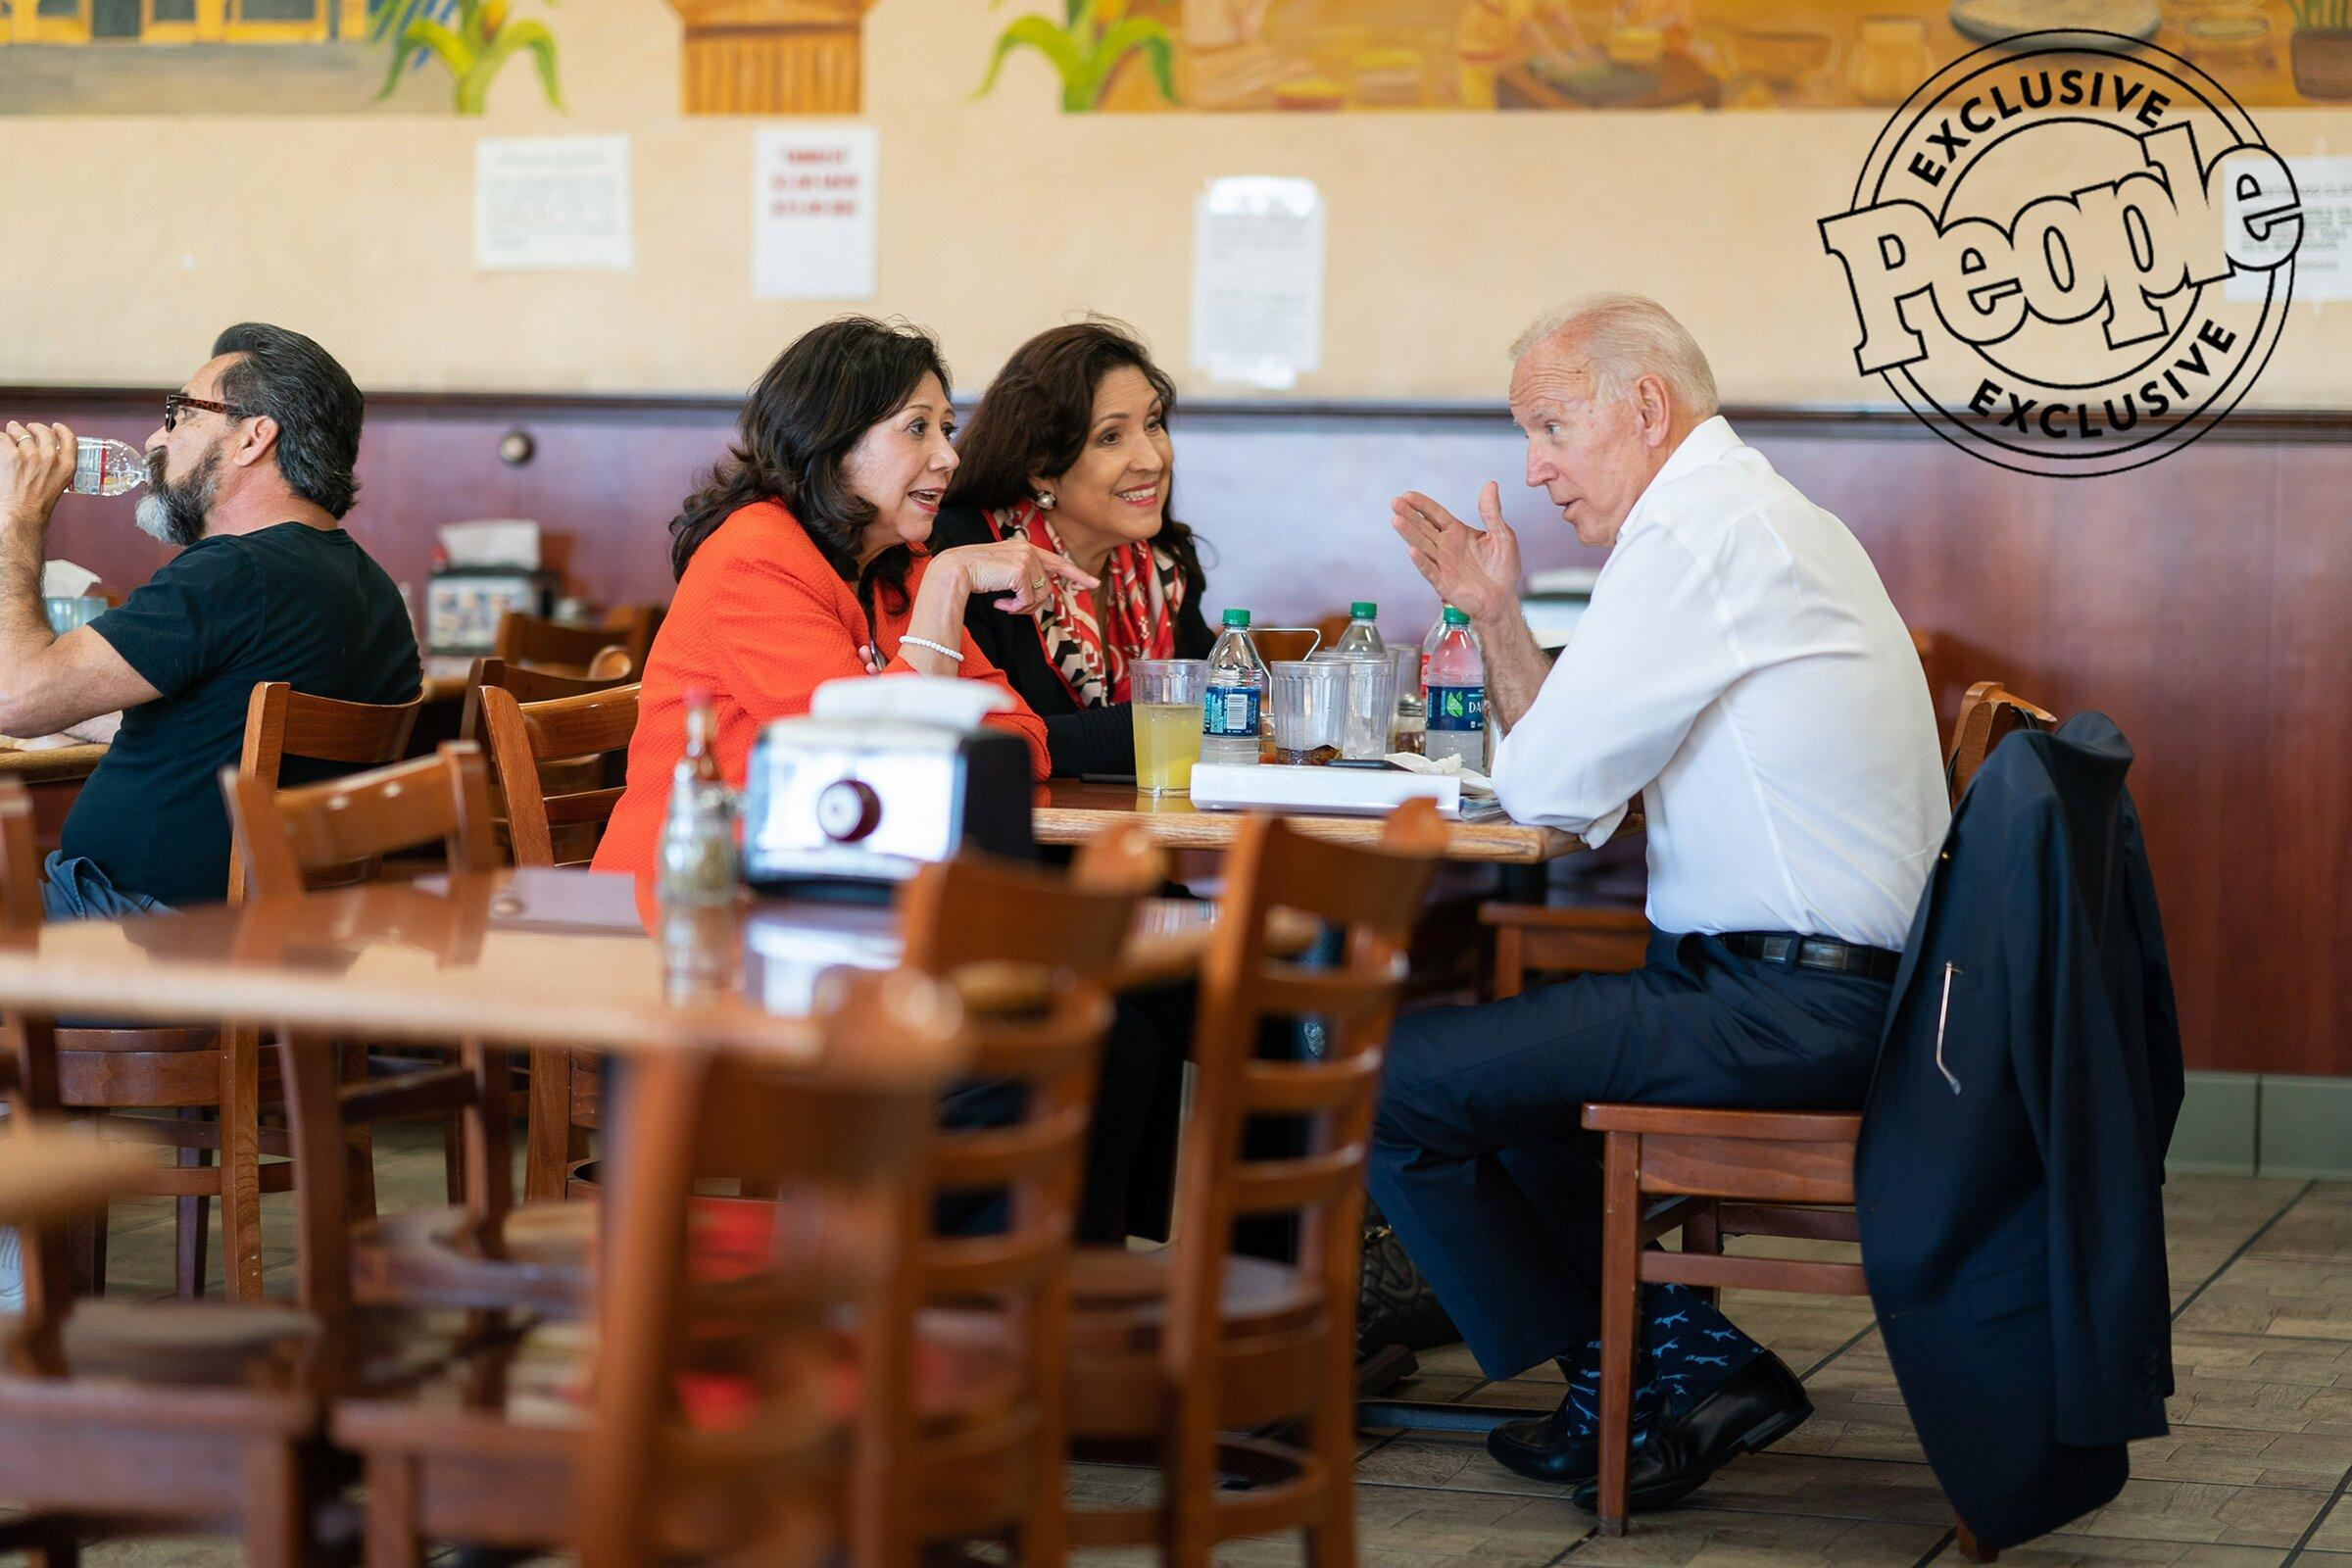 Biden, Former Secretary of Labor Hilda Solis and Dr. Cynthia Tellas have lunch at Tamales Lilianas in Los Angeles on July 19, 2019.